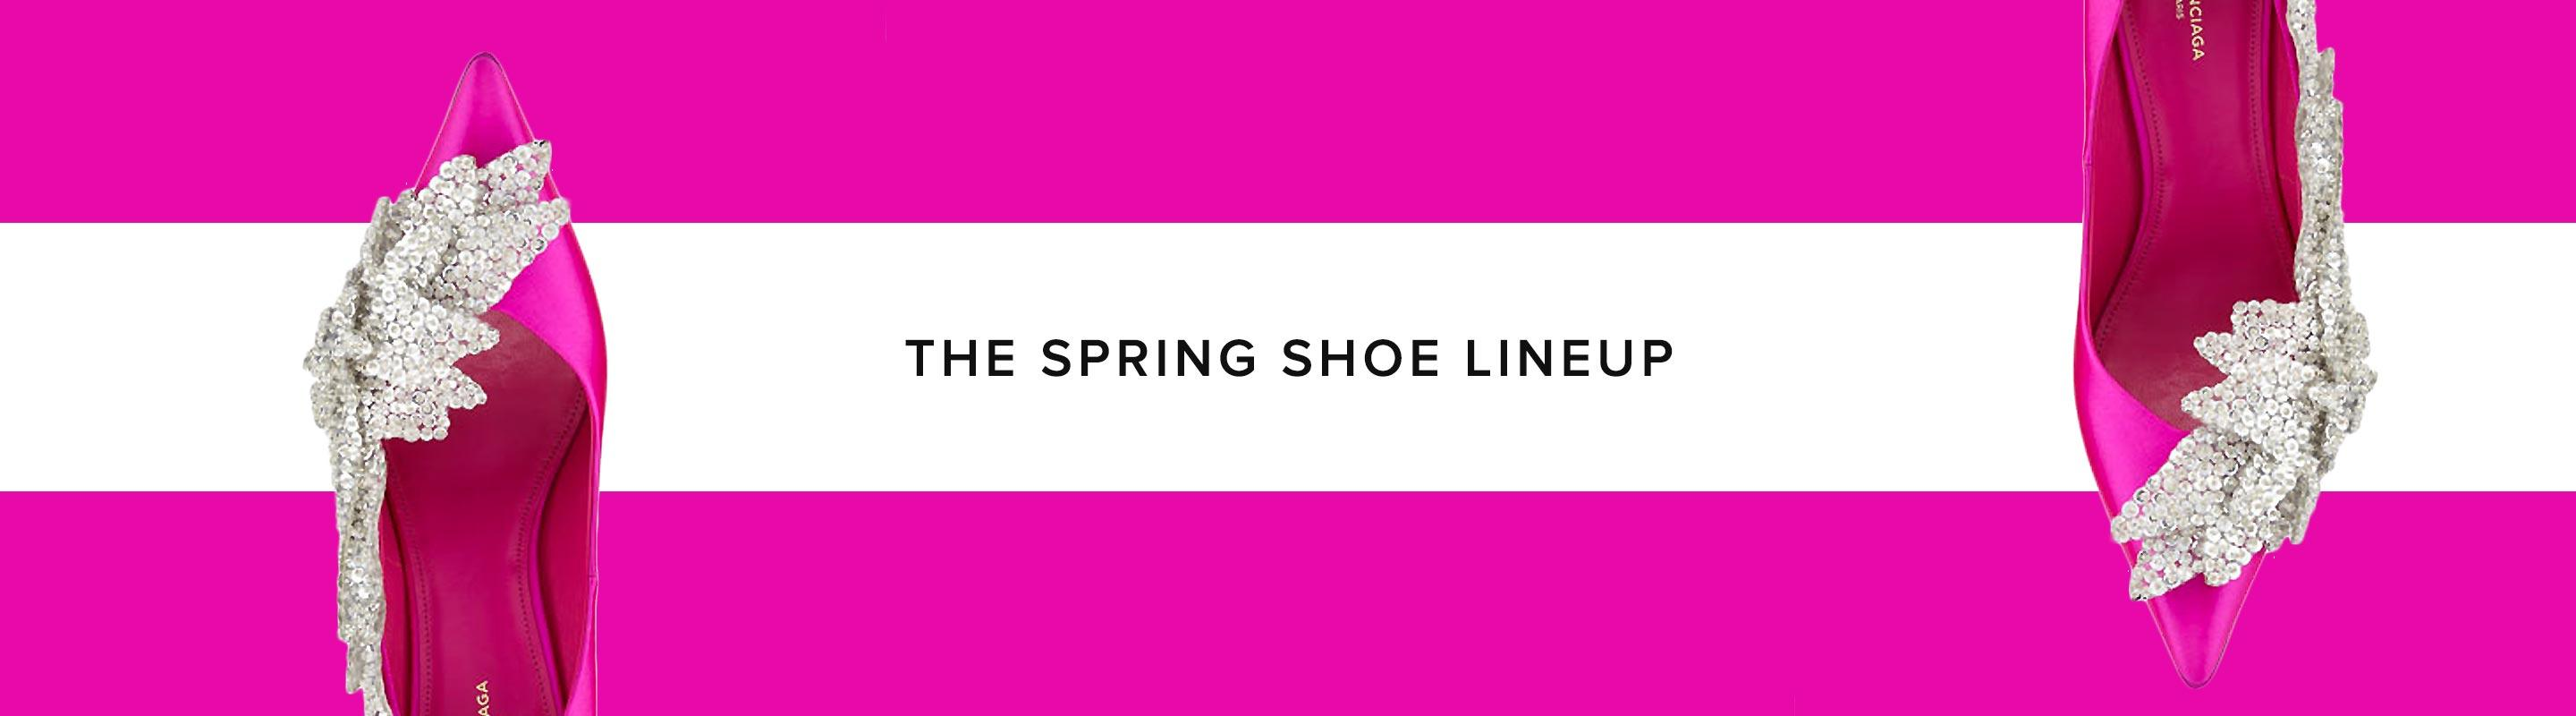 The Spring Shoe Lineup